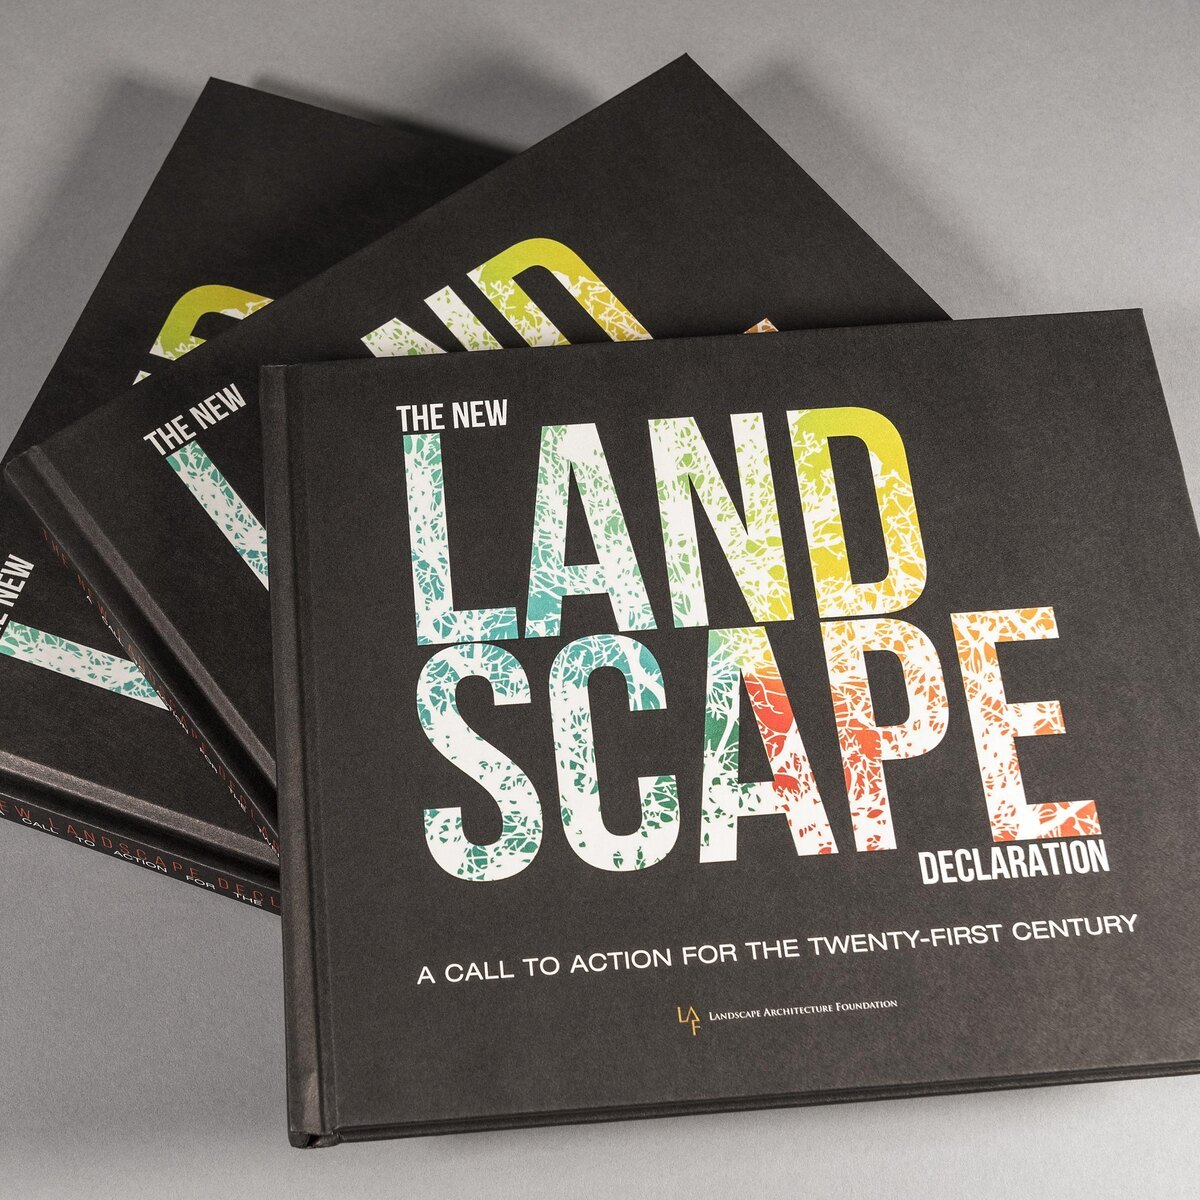 The New Landscape Declaration Book Landscape Architecture Foundation